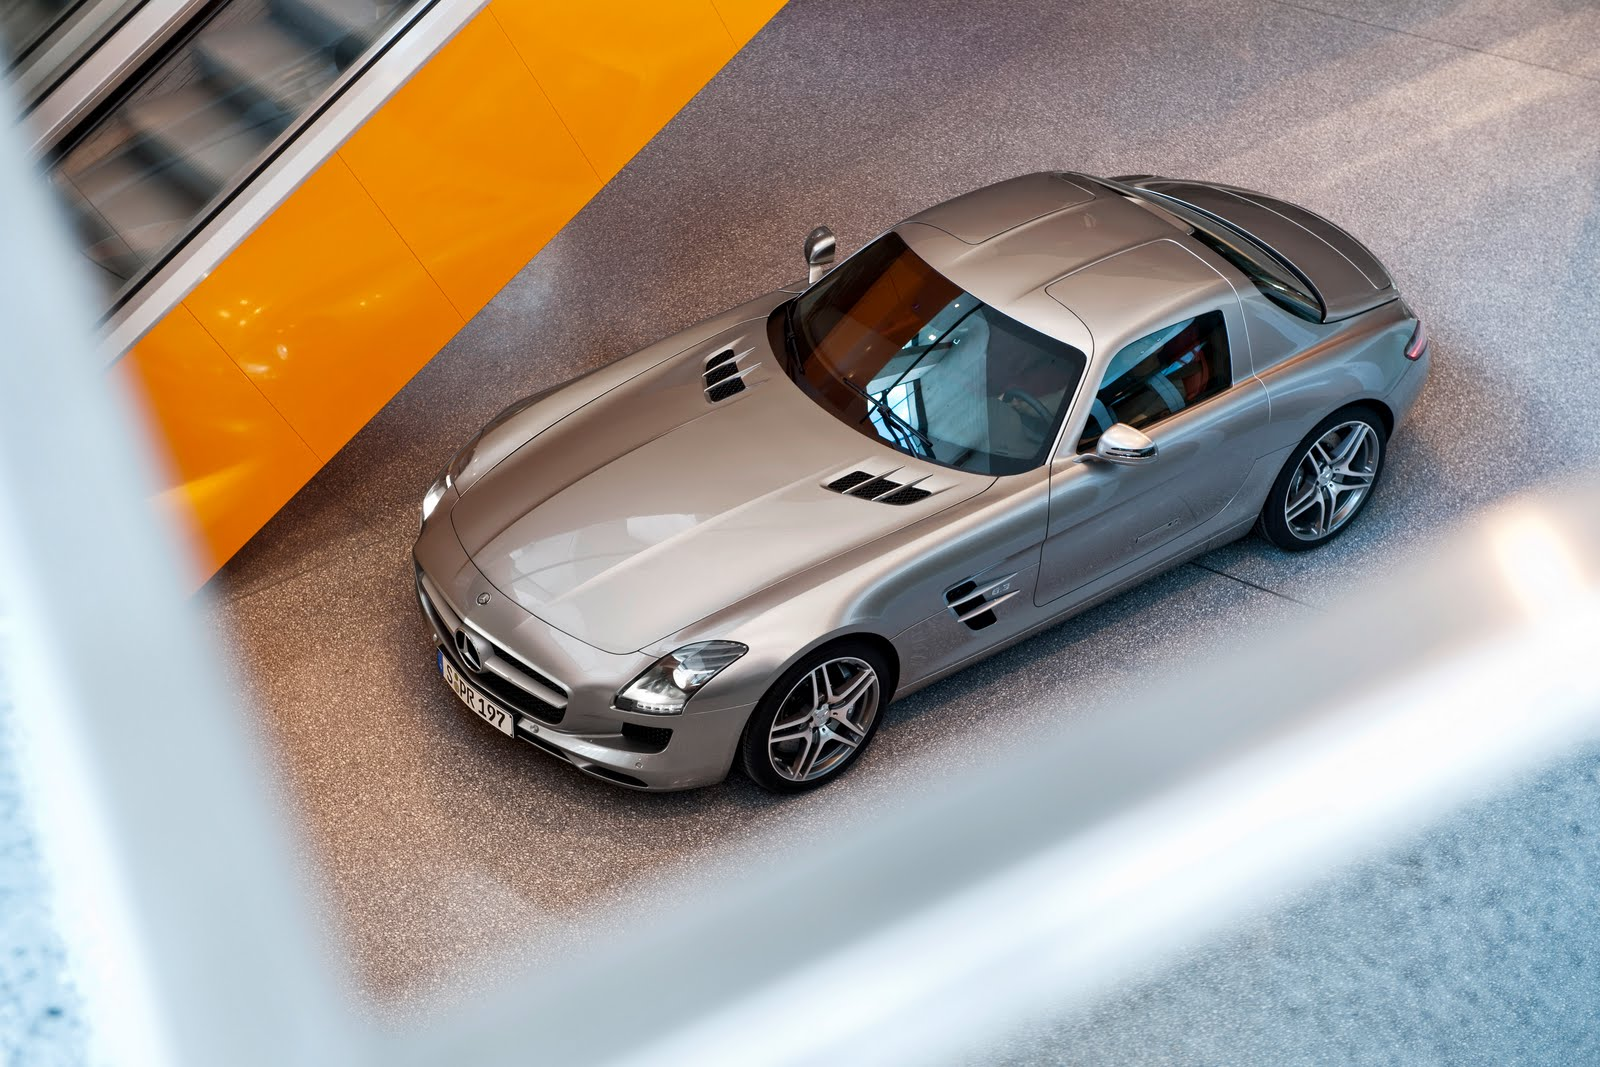 Mercedes SLS AMG, the most